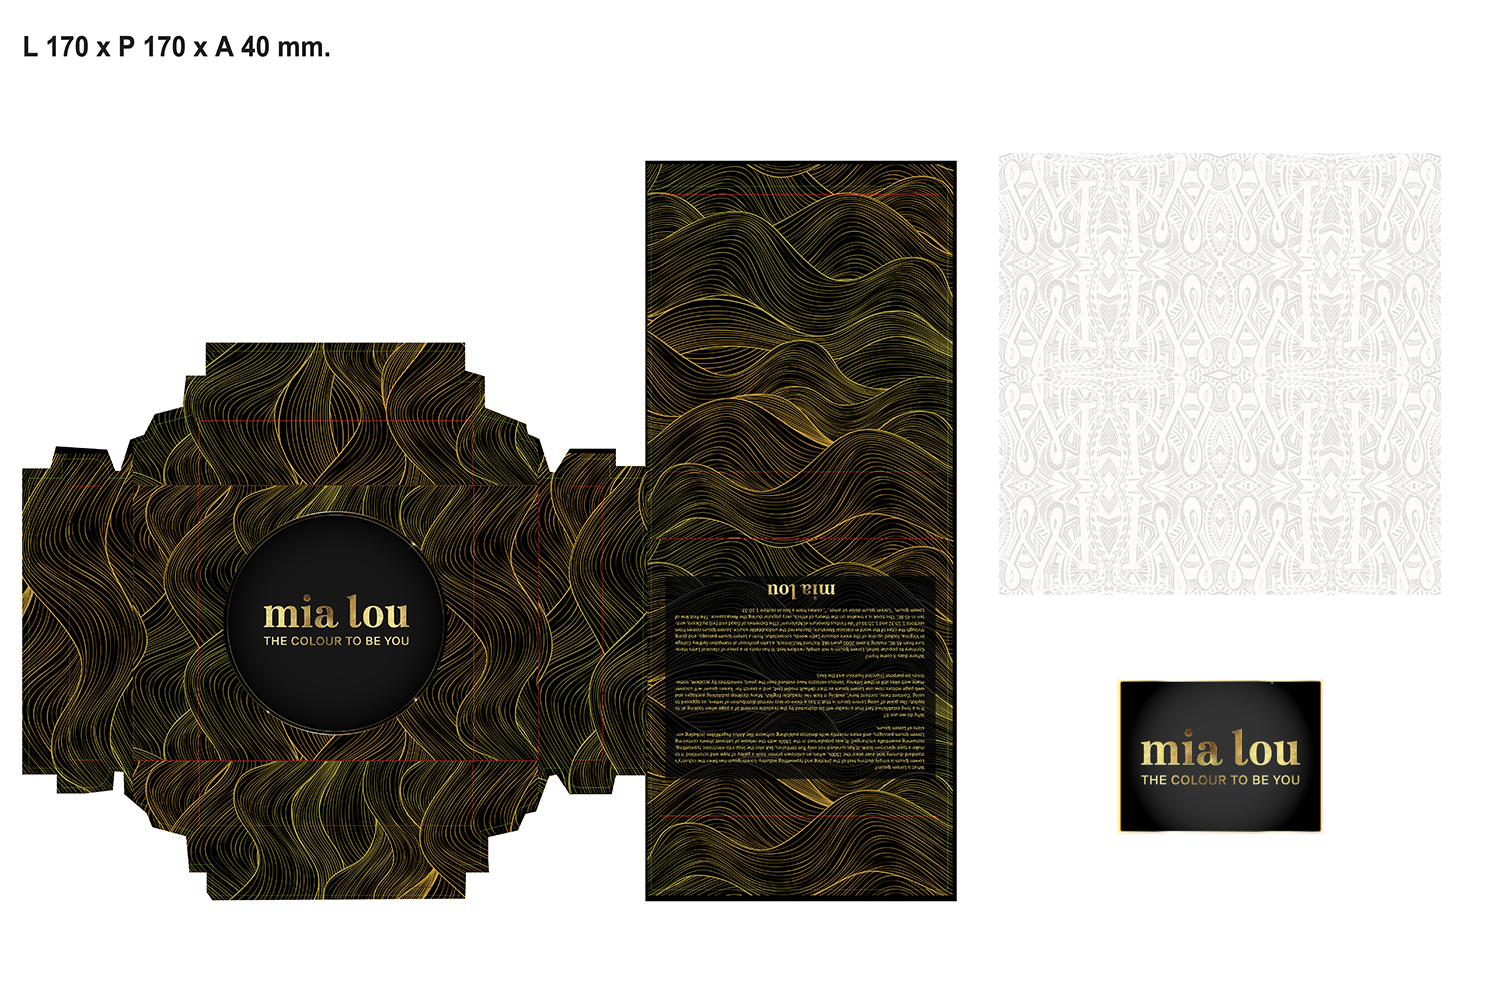 W superbly Elegant, Serious, Hair And Beauty Packaging Design for Mia Lou AG HY59